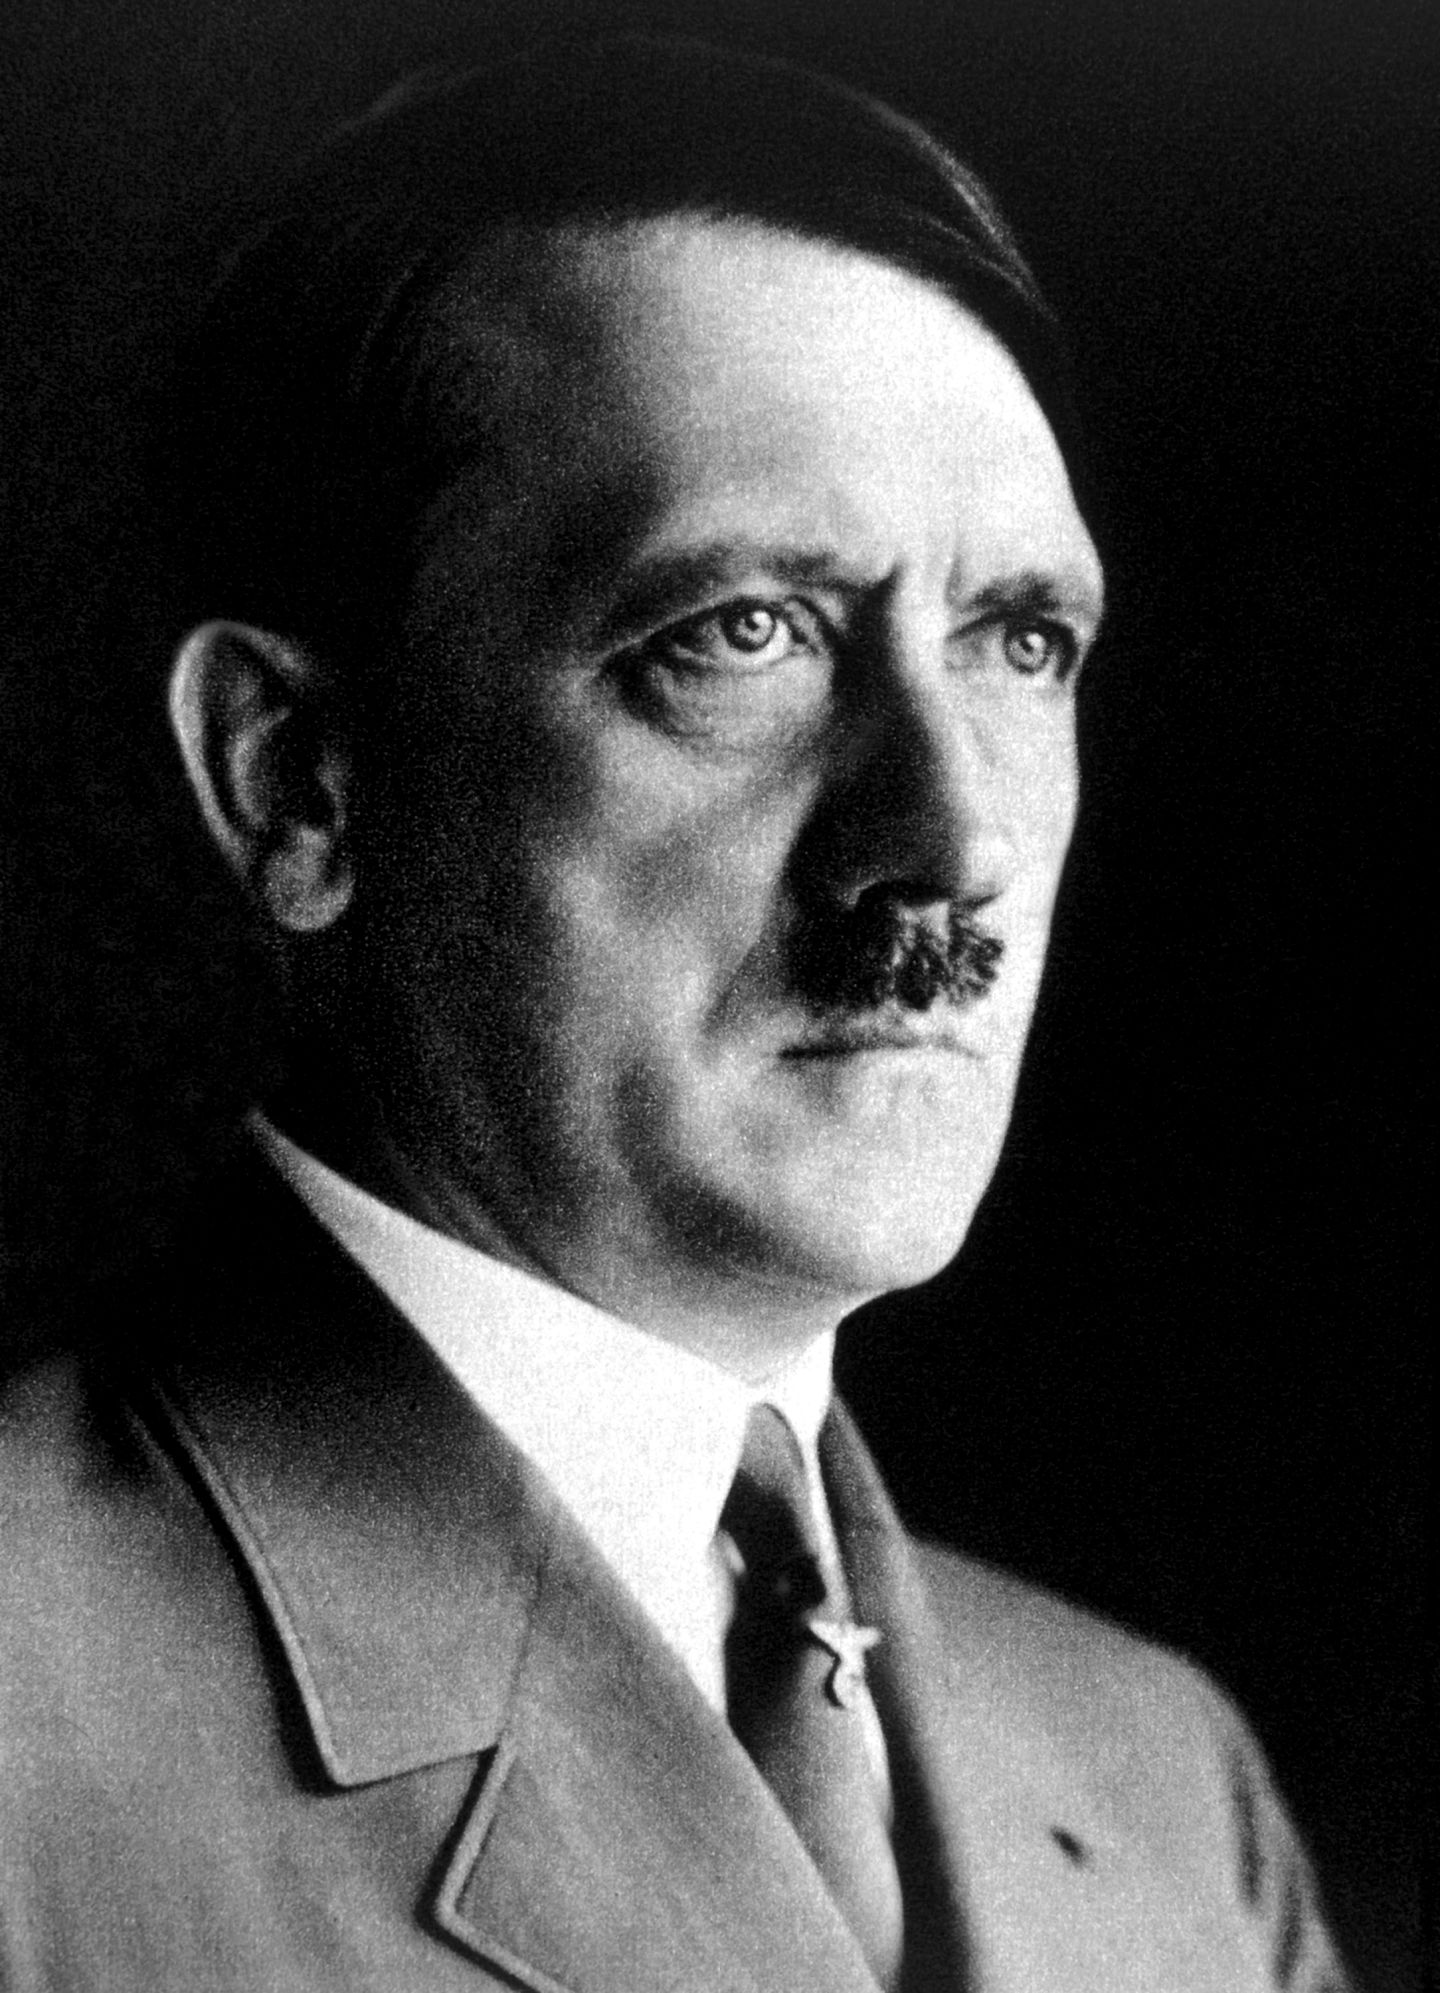 adolf hitler kimdiradolf hitler anime, adolf hitler wiki, adolf hitler kimdir, adolf hitler speech, adolf hitler film, adolf hitler - shooting stars, adolf hitler platz, adolf hitler art, adolf hitler biografie, adolf hitler kavgam, adolf hitler quotes, adolf hitler wikipedia, adolf hitler photo, adolf hitler gif, adolf hitler height, adolf hitler mein kampf, adolf hitler biography, adolf hitler sozleri, adolf hitler citate, adolf hitler death